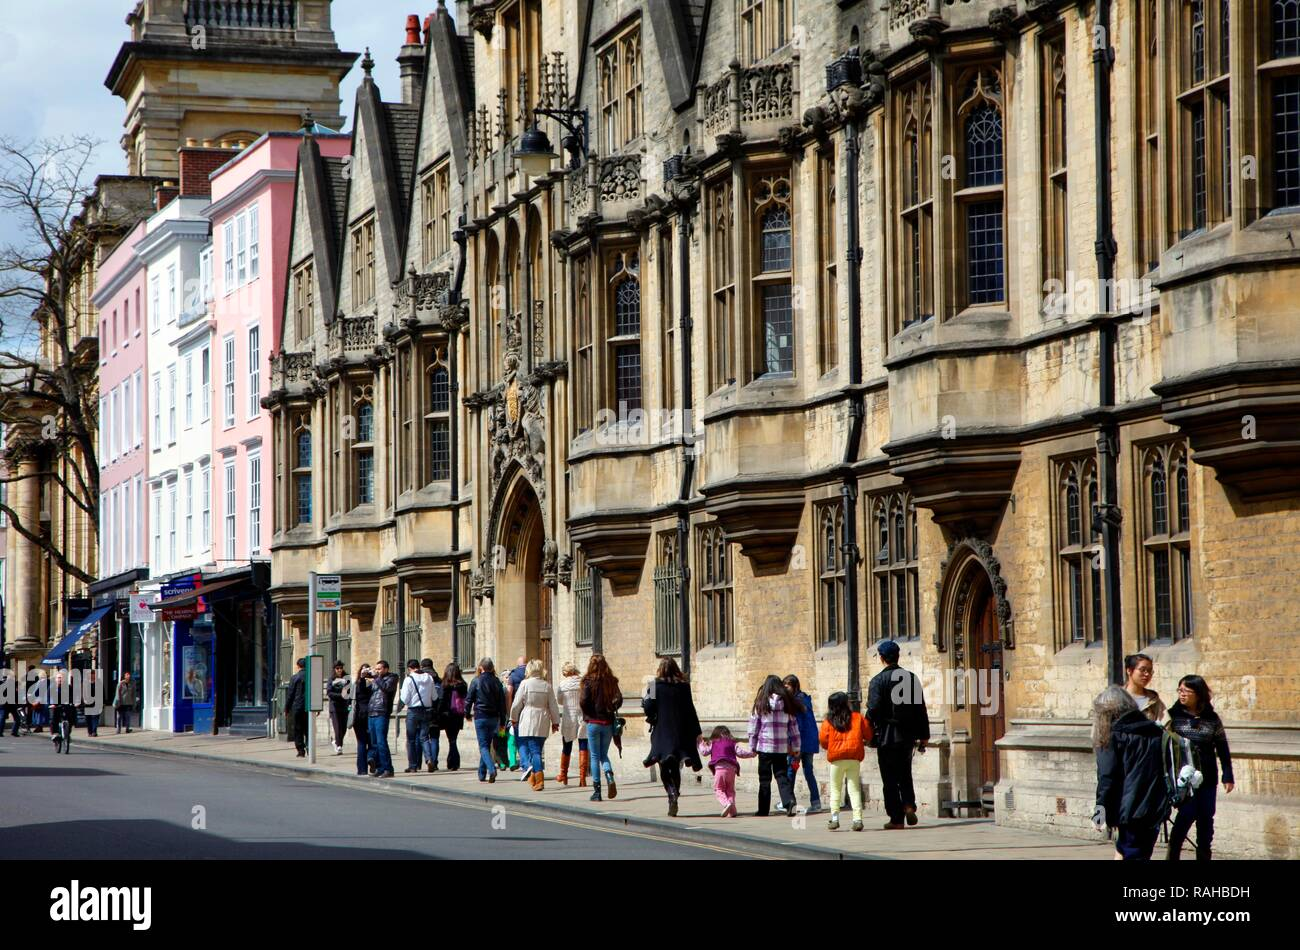 Brasenose College, High Street, inner city, Oxford, Oxfordshire, United Kingdom, Europe - Stock Image